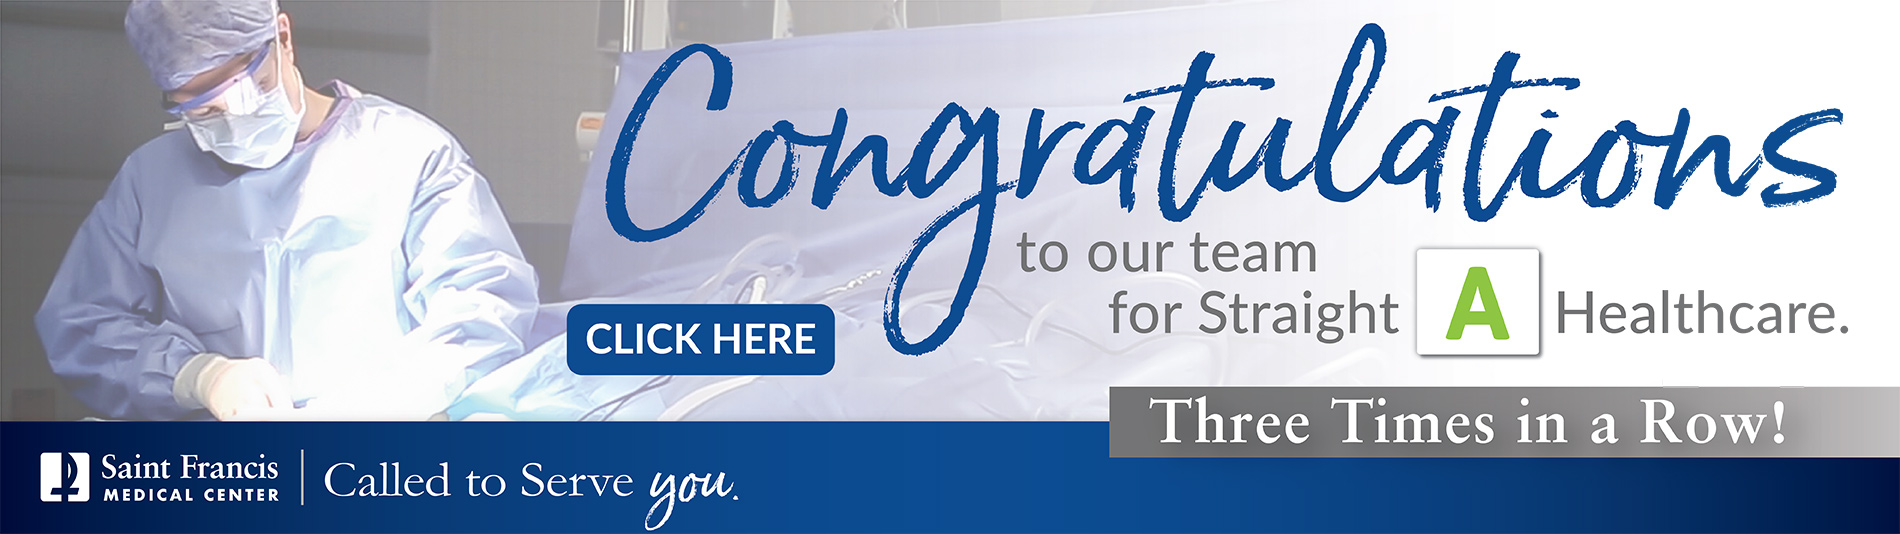 Congratulations to our team for Straight A Healthcare, three times in a row! Click here to learn more.